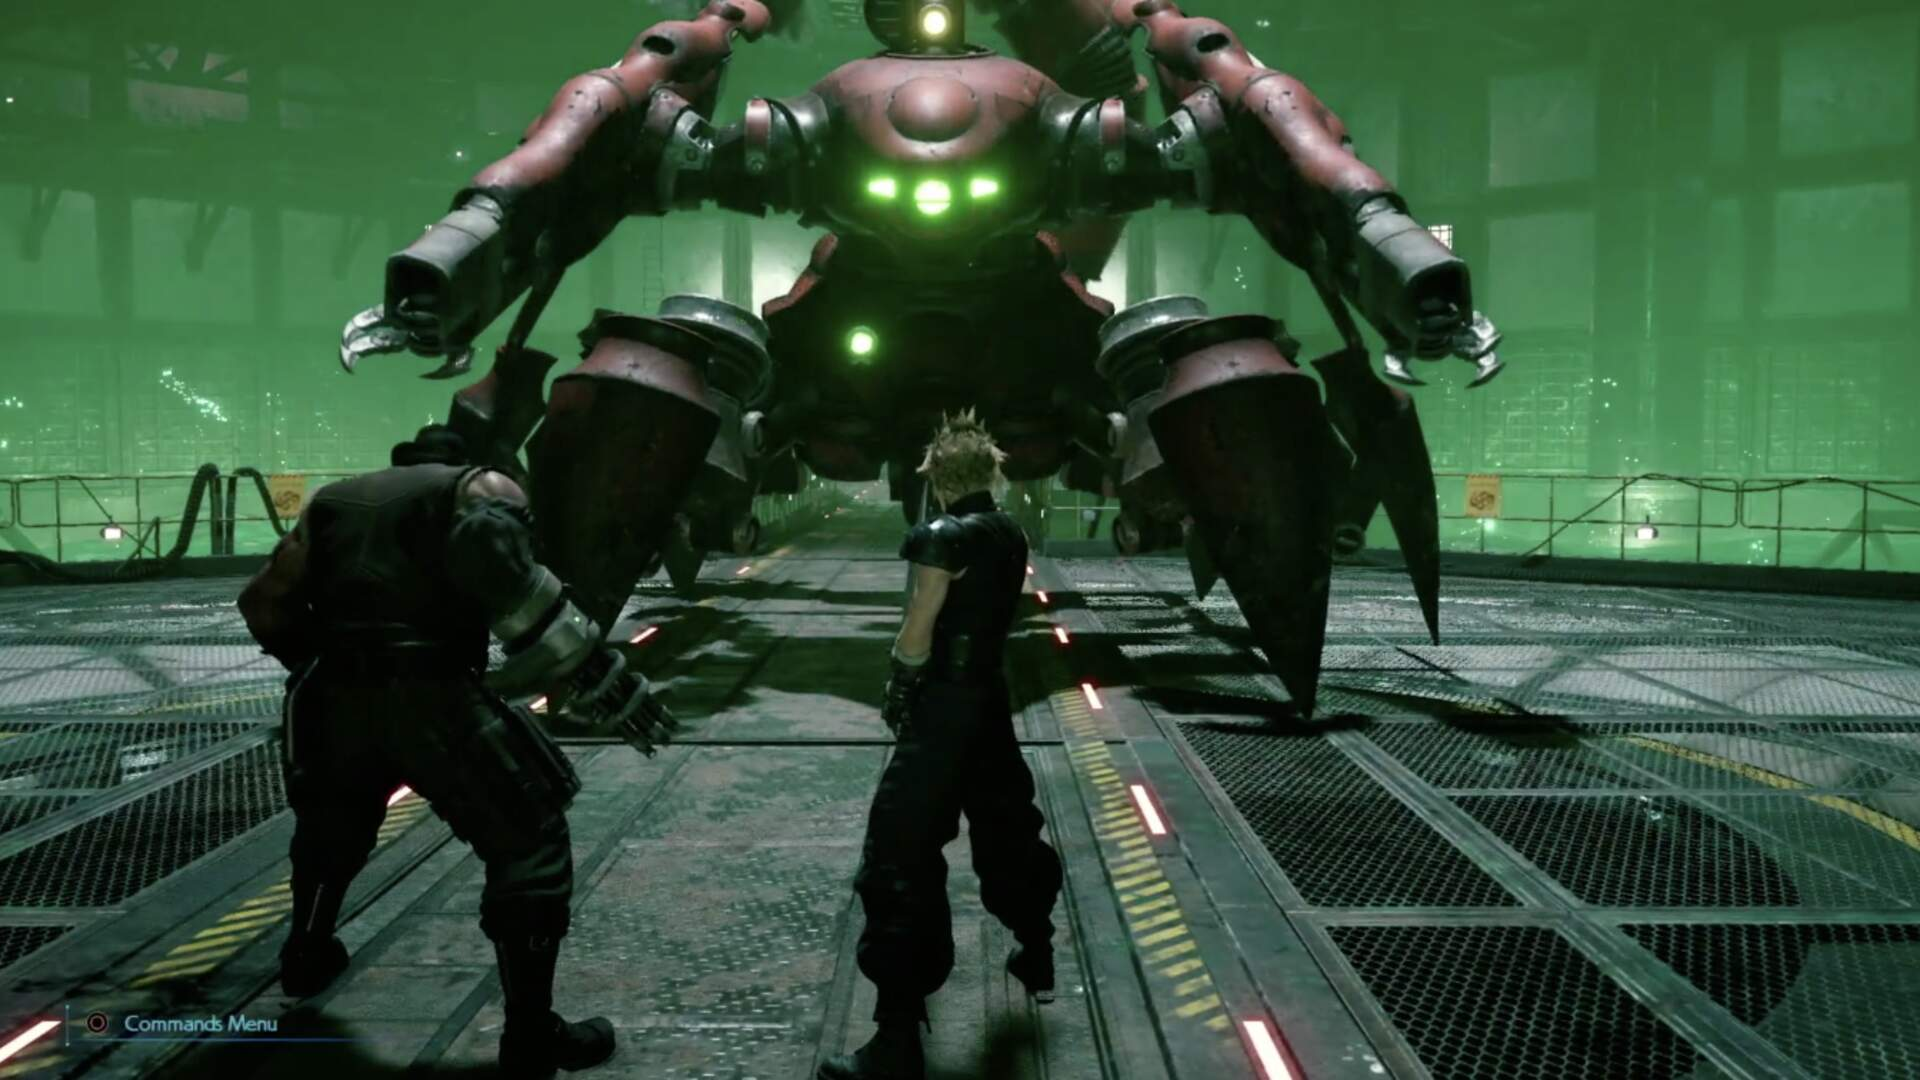 Final Fantasy 7 Remake Will Support Next-Gen Consoles, Square Enix CEO Confirms